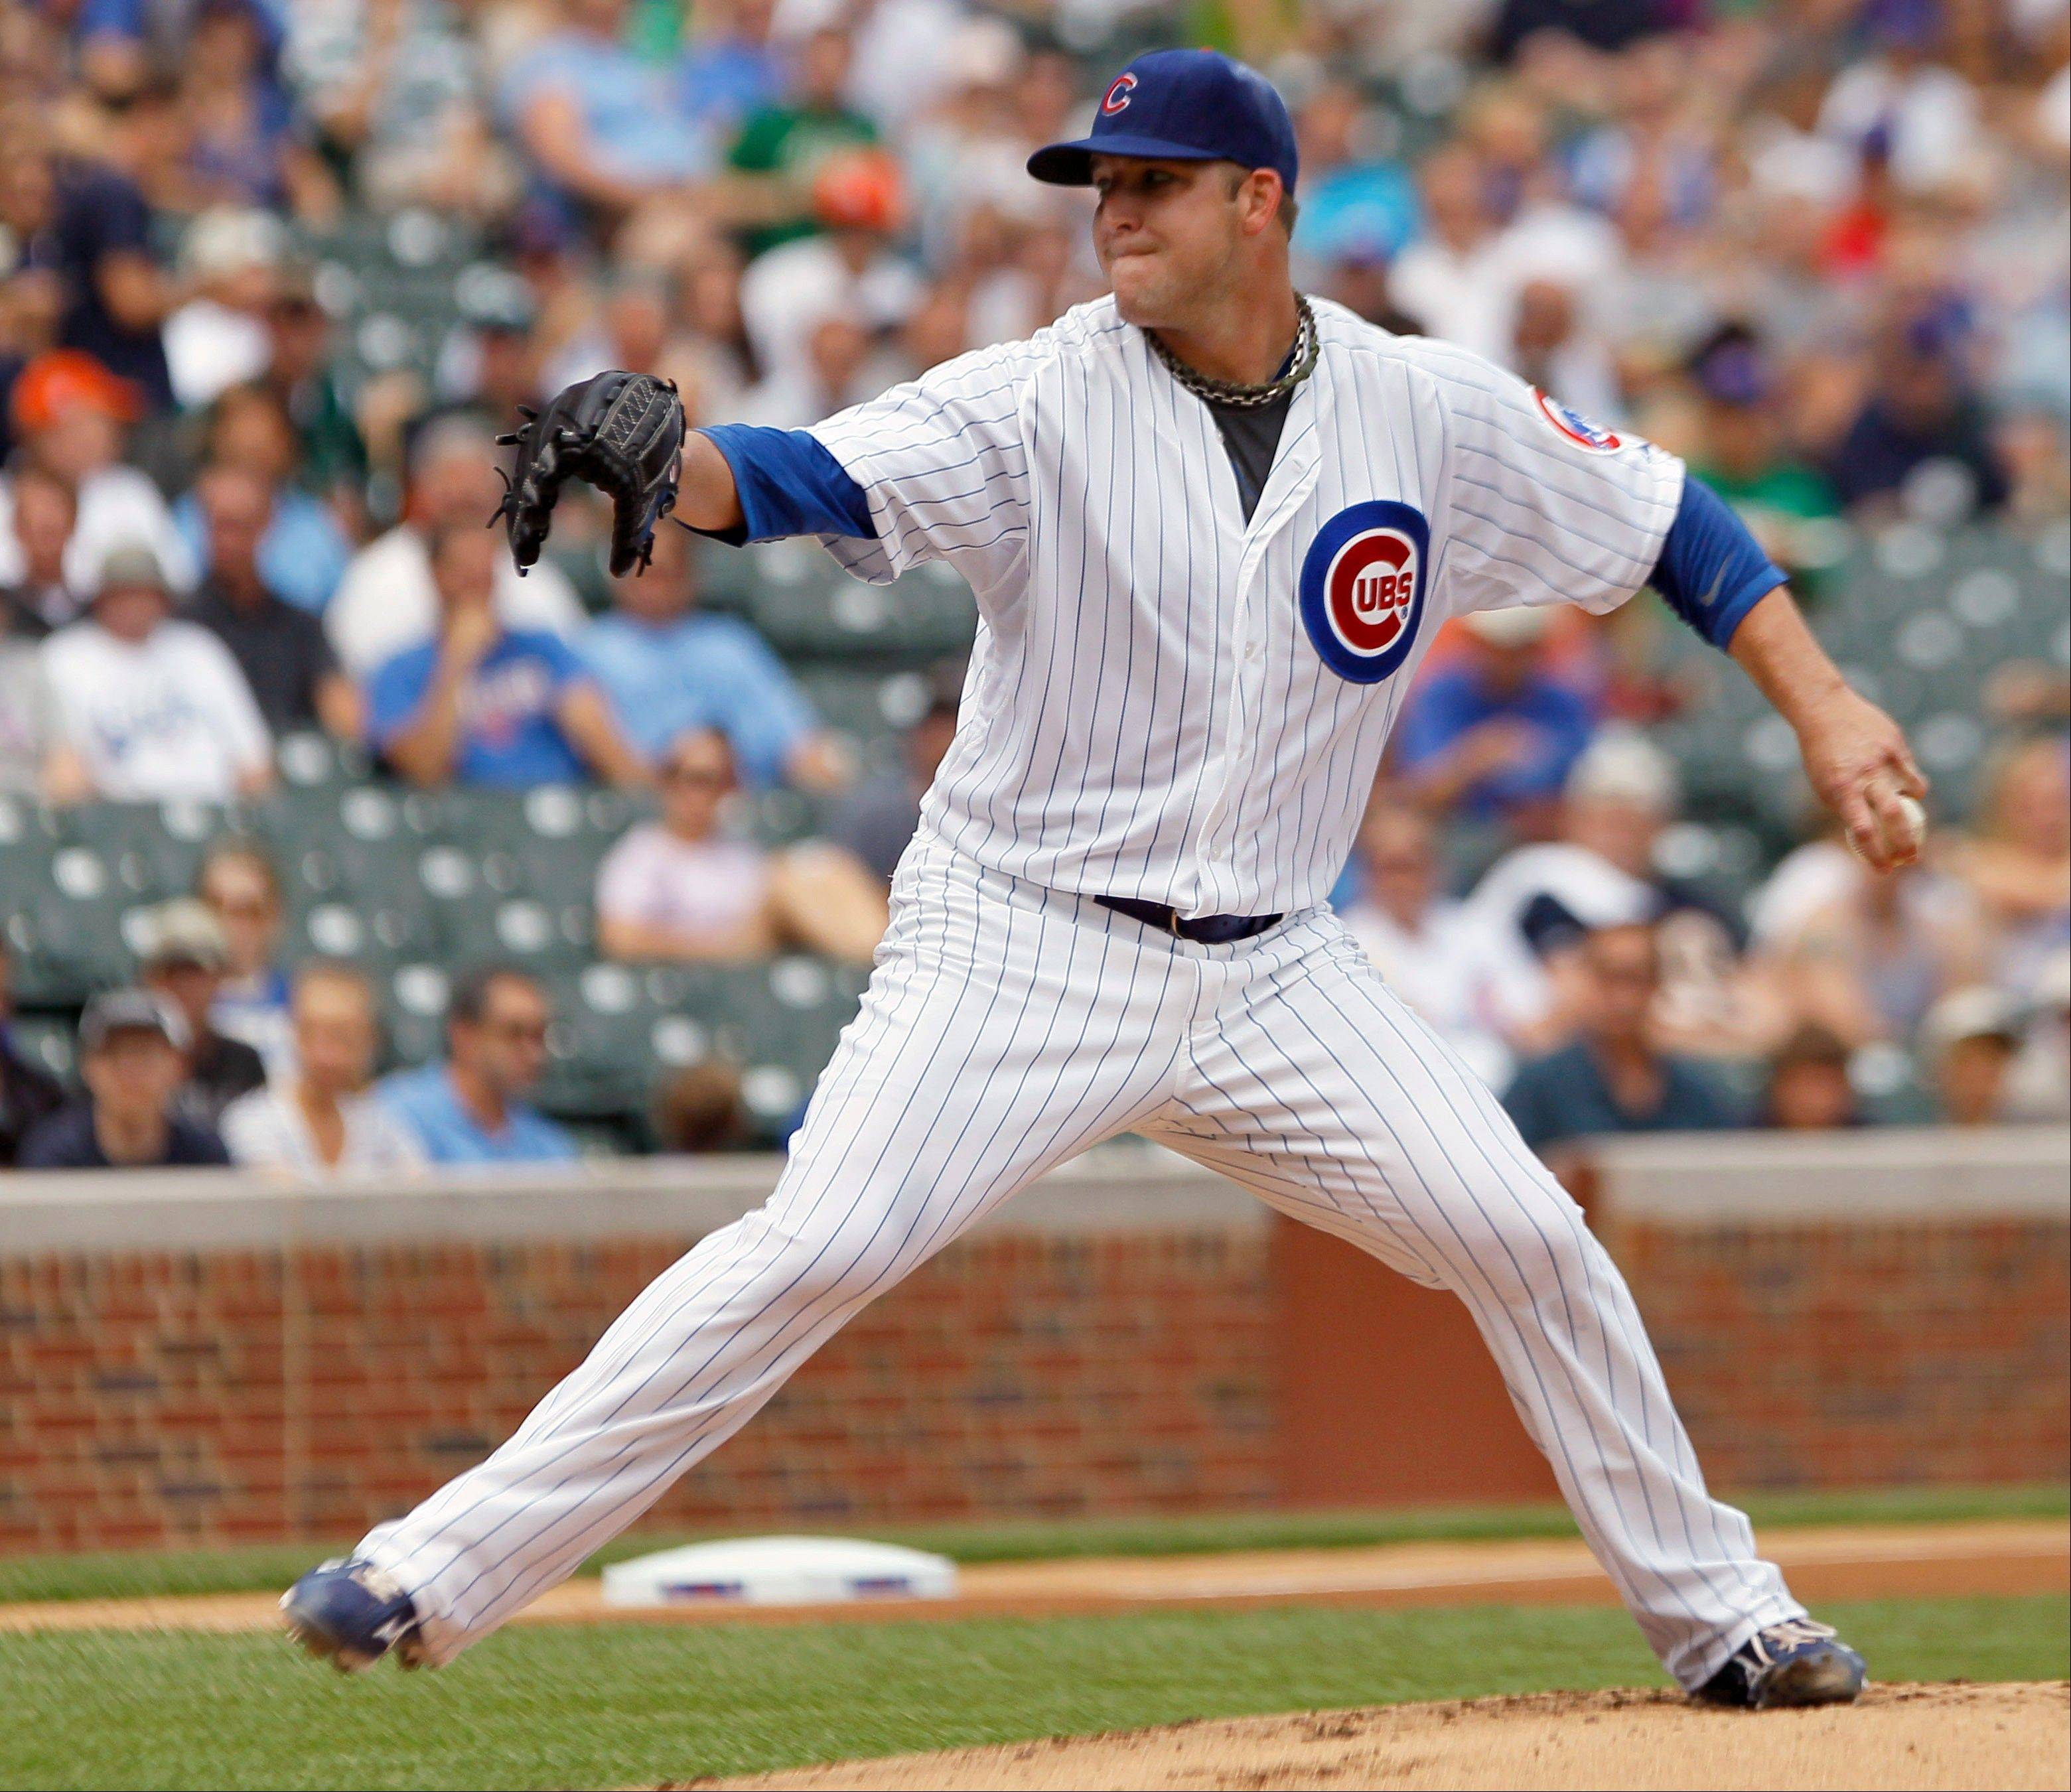 Maholm does his best Buehrle; Cubs keep clicking